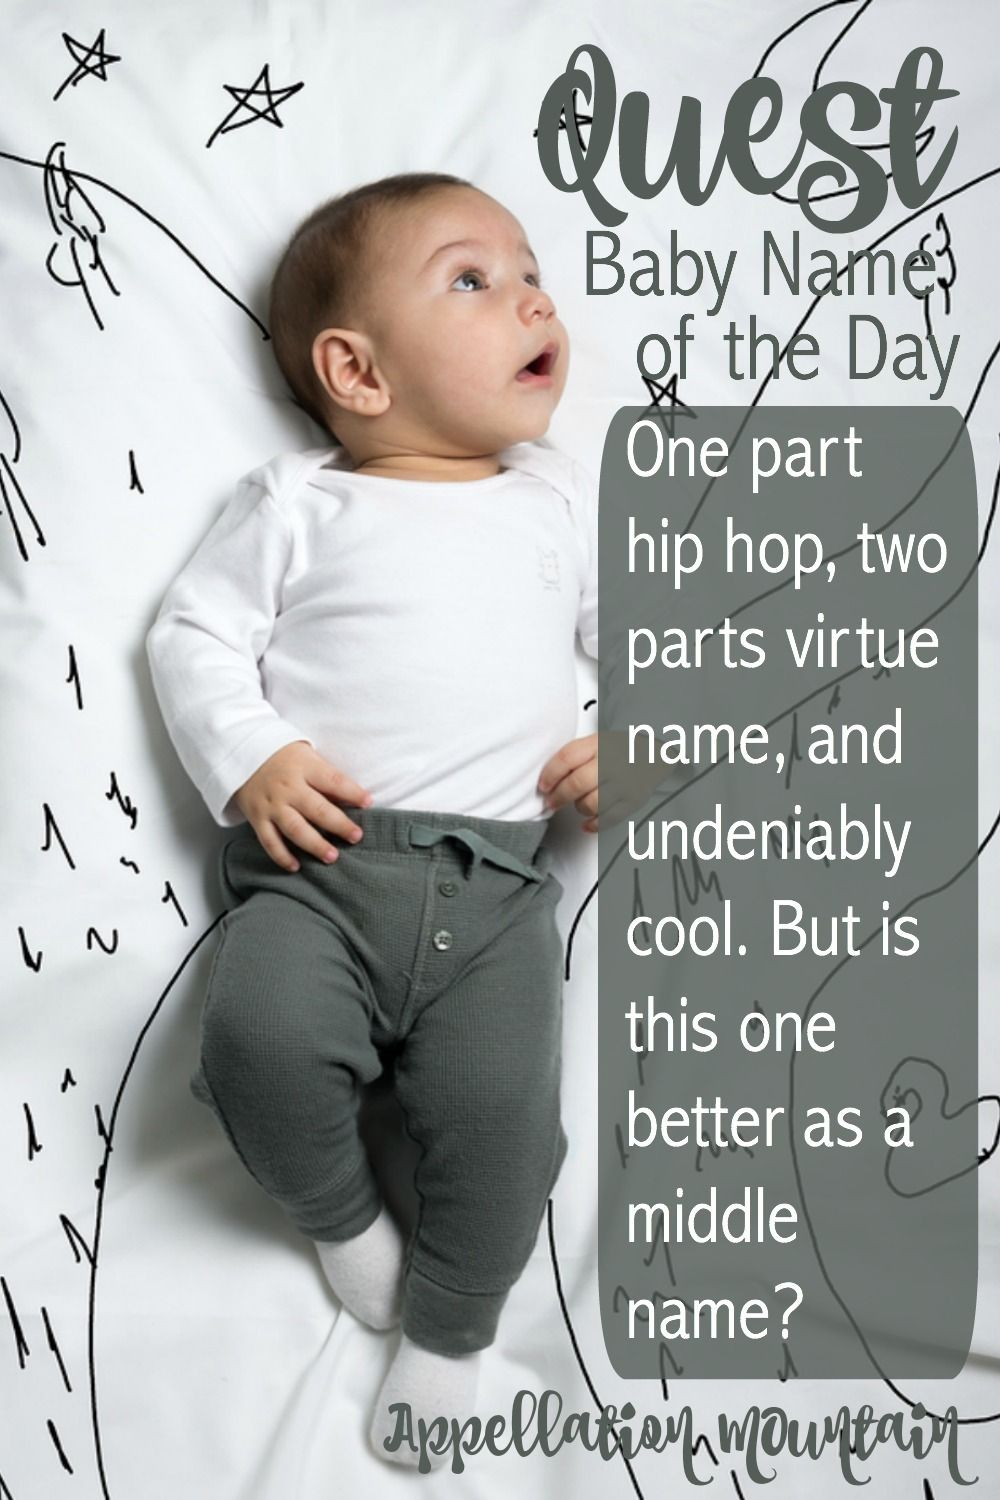 Looking For A Cool Unexpected Middle Name Your New Baby Love The Initial